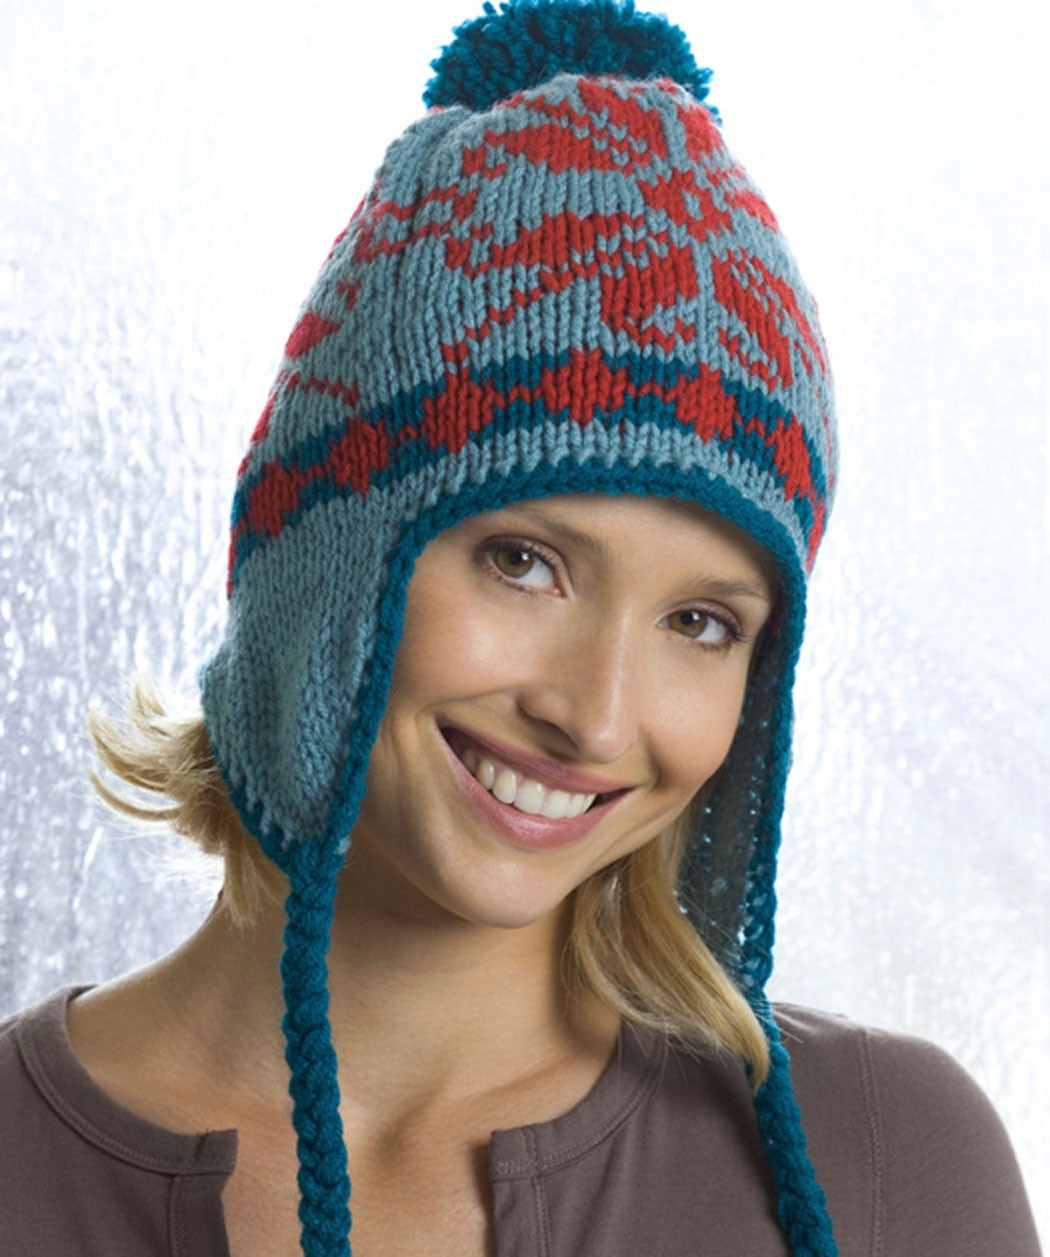 Easy Knitting Pattern Hat With Ear Flaps : Earflap Hat Knitting Pattern A Knitting Blog